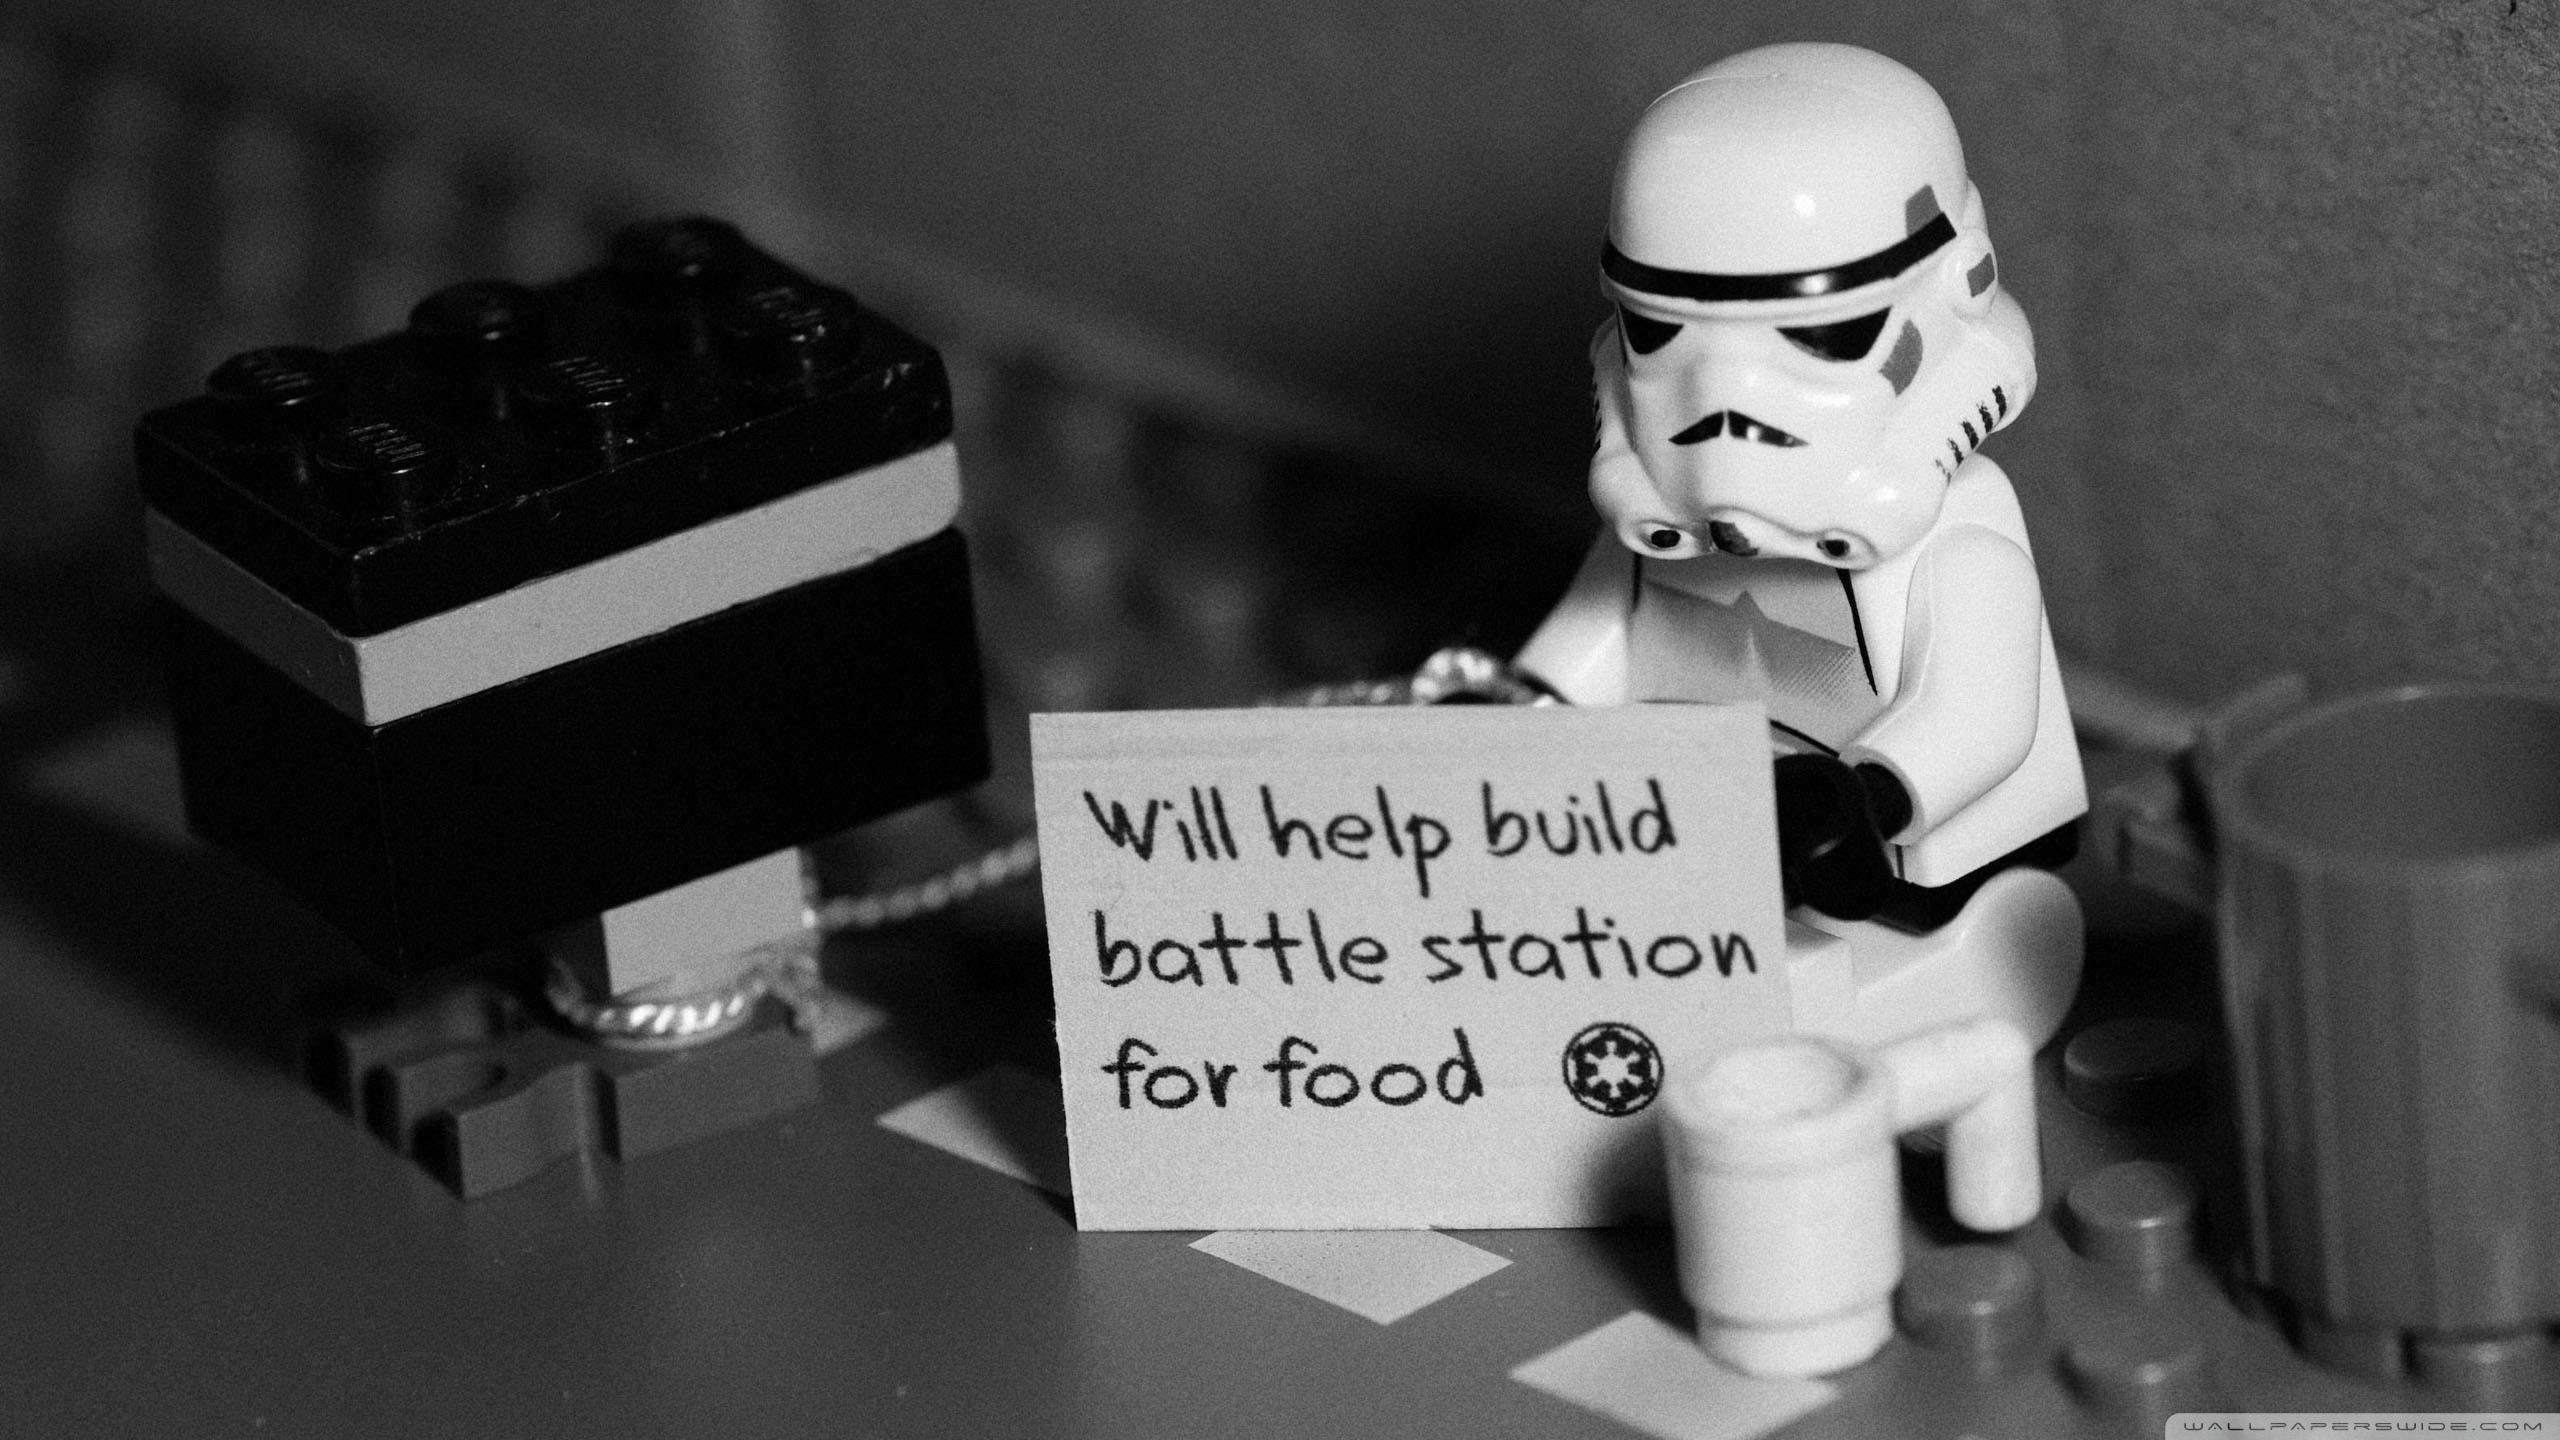 Star wars stormtroopers humor quotes help wallpaper - Star wars quotes wallpaper ...